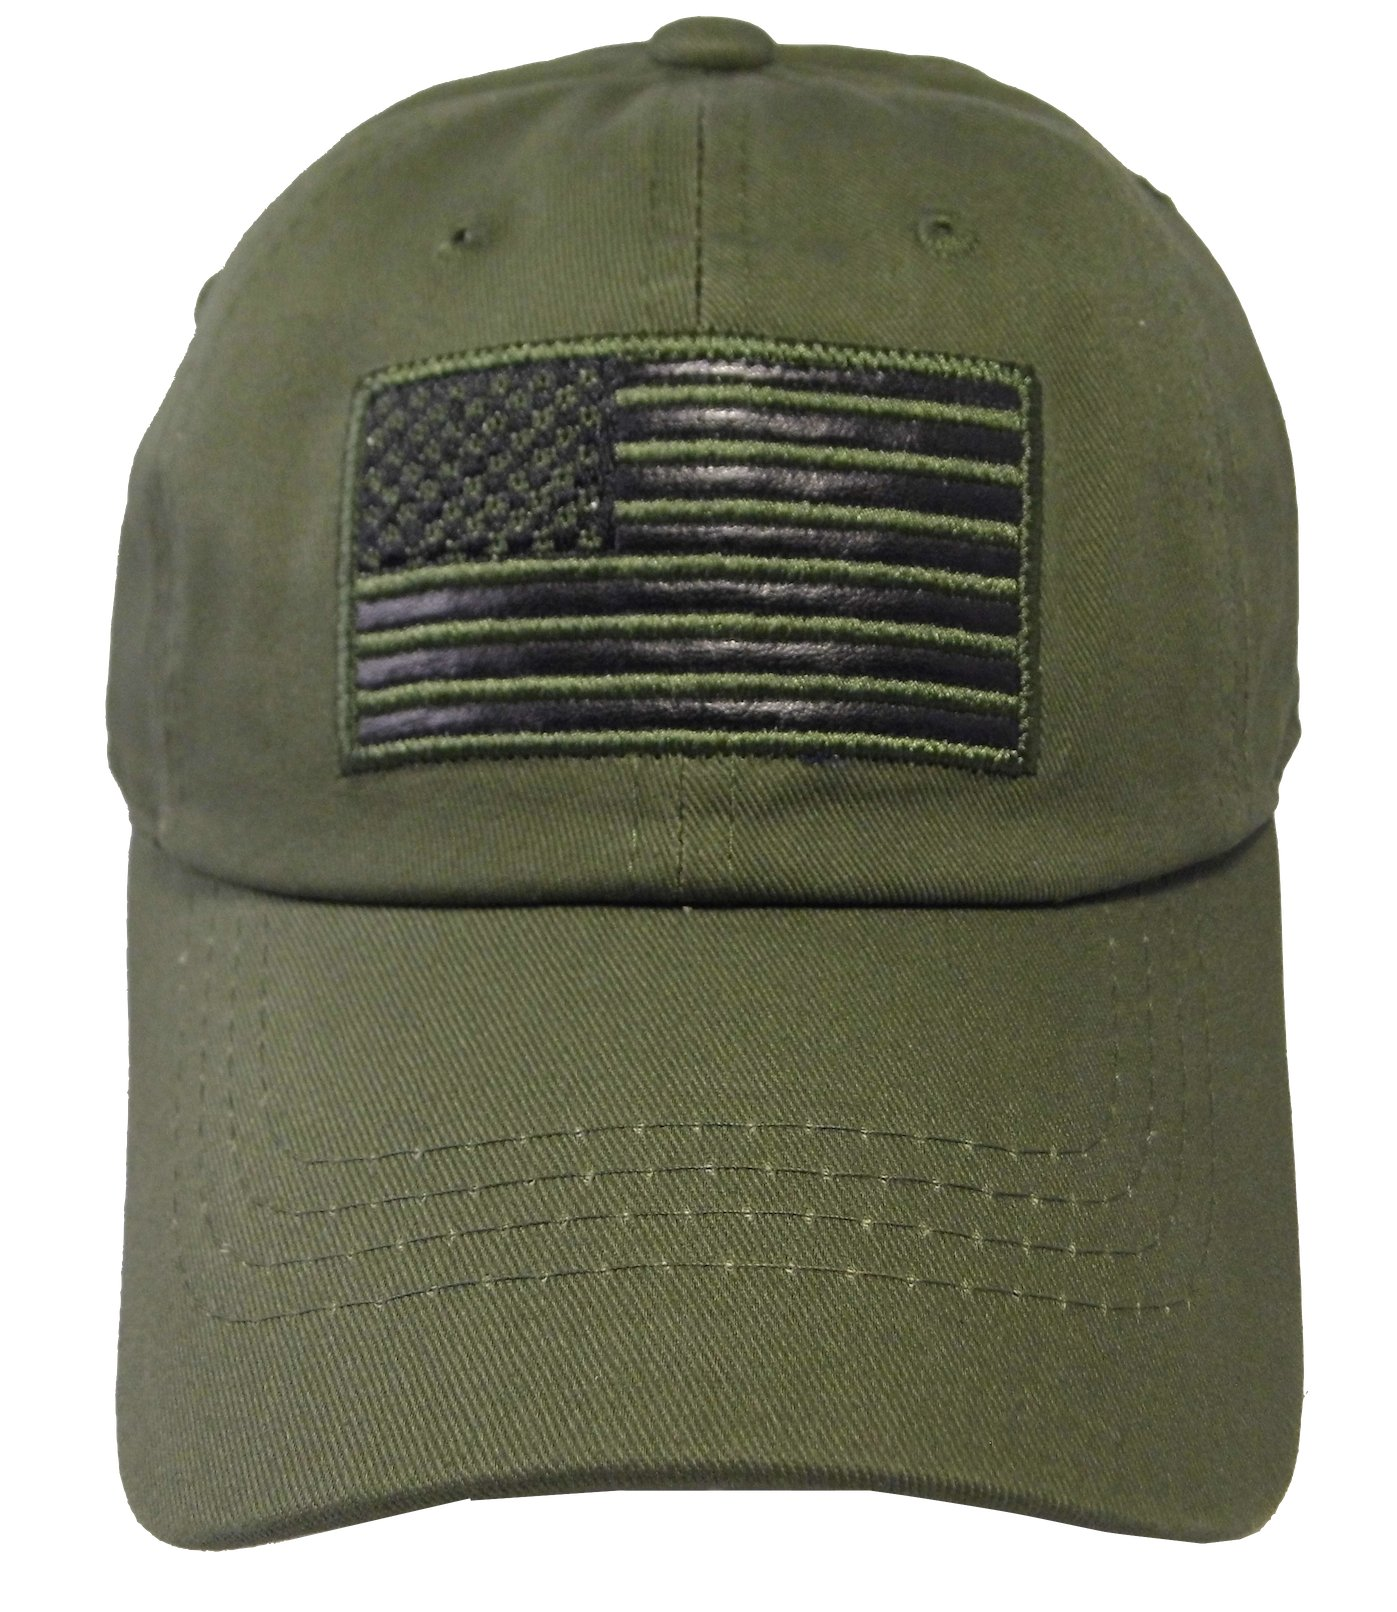 Altis Apparel Youth US Flag Embroidered Patch Army Tactical Cotton Cap (Youth, Olive)